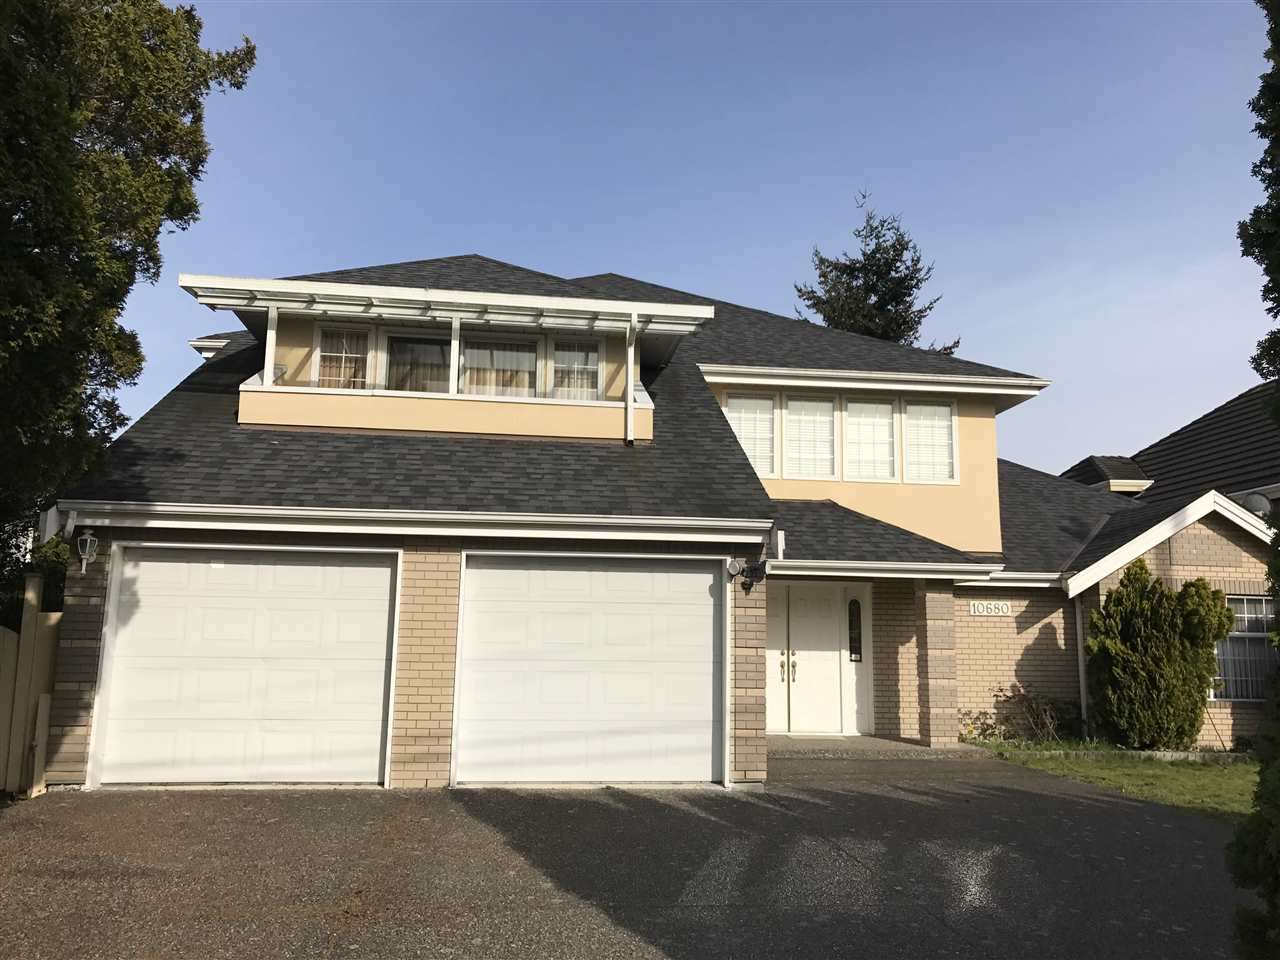 Spotless 3764 sf 5 bedroom & 4 bath home on a 8383 sf regular lot. Features: granite entry, radiant HW heat, wok kit, extra large living & dining, 2 stairs, well kept, newer roof, fresh side paint, convenient location close to buses & easy access to French Immersion high school, South Arm park & Ironwood mall. House is very clean & shows very well. Open house: July15/July16, 2:00-4:00 PM